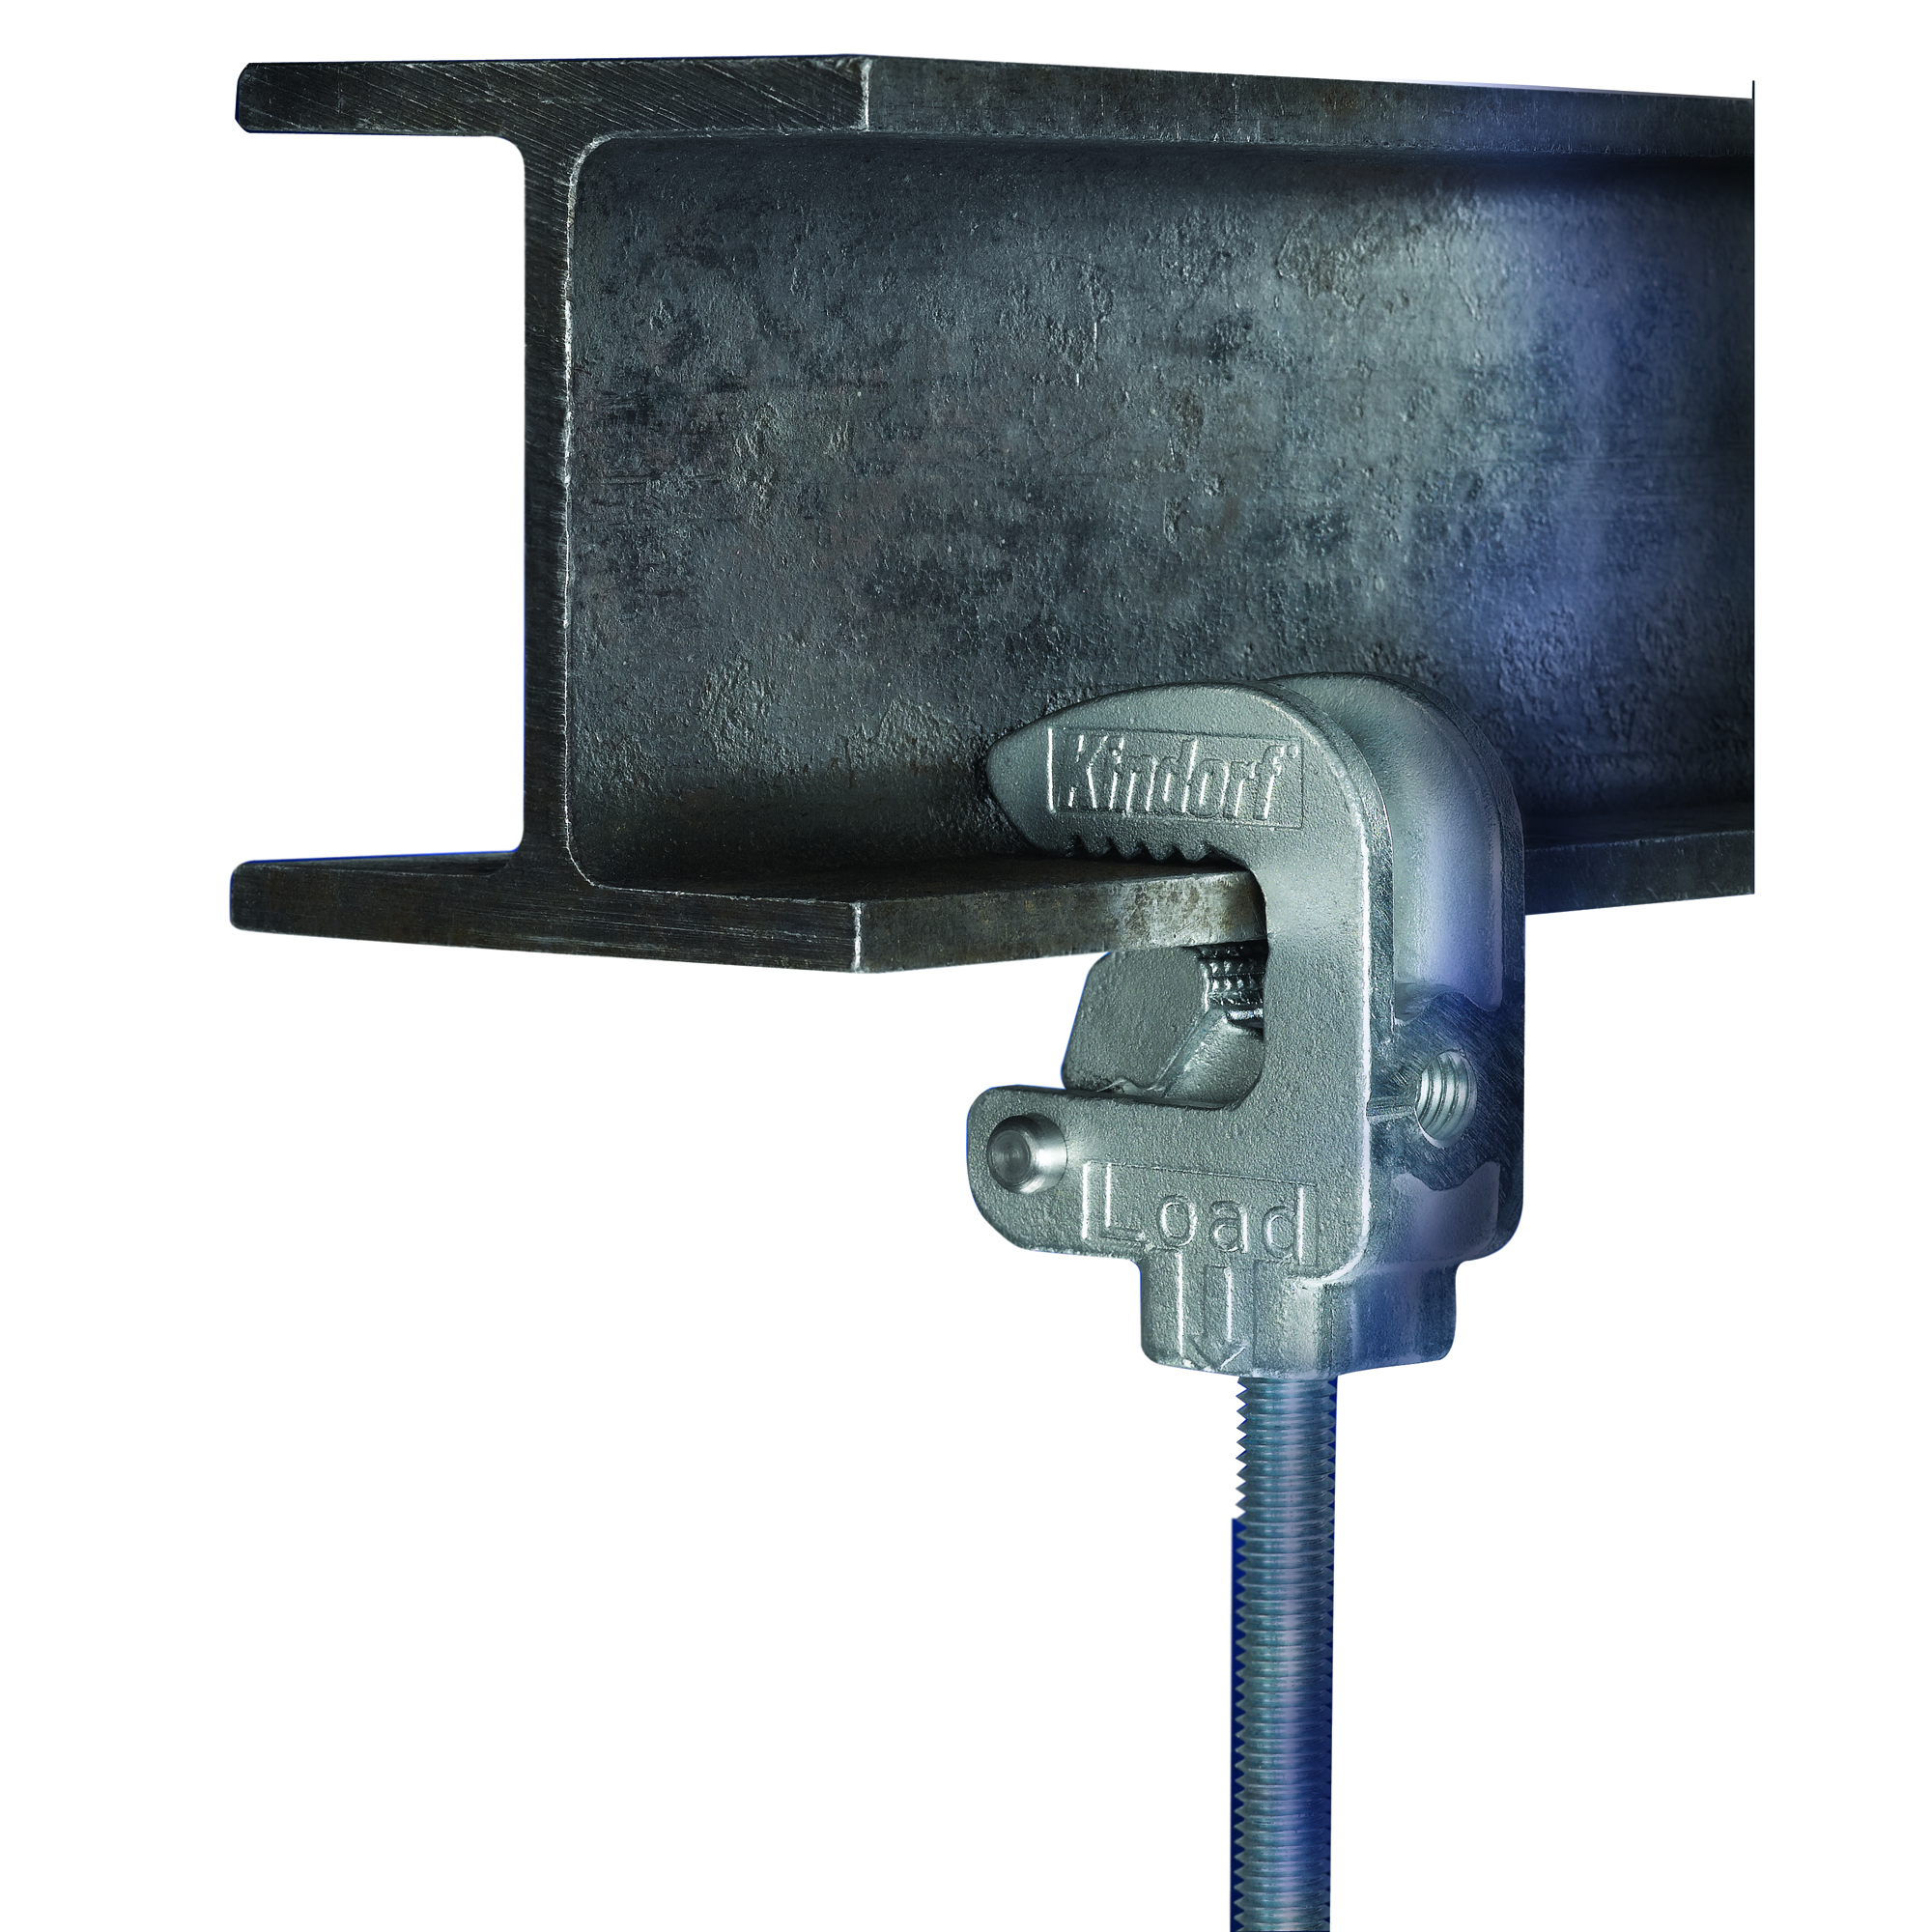 Fuse Holder Search For Wiring Diagrams Maxi Box Images Gallery